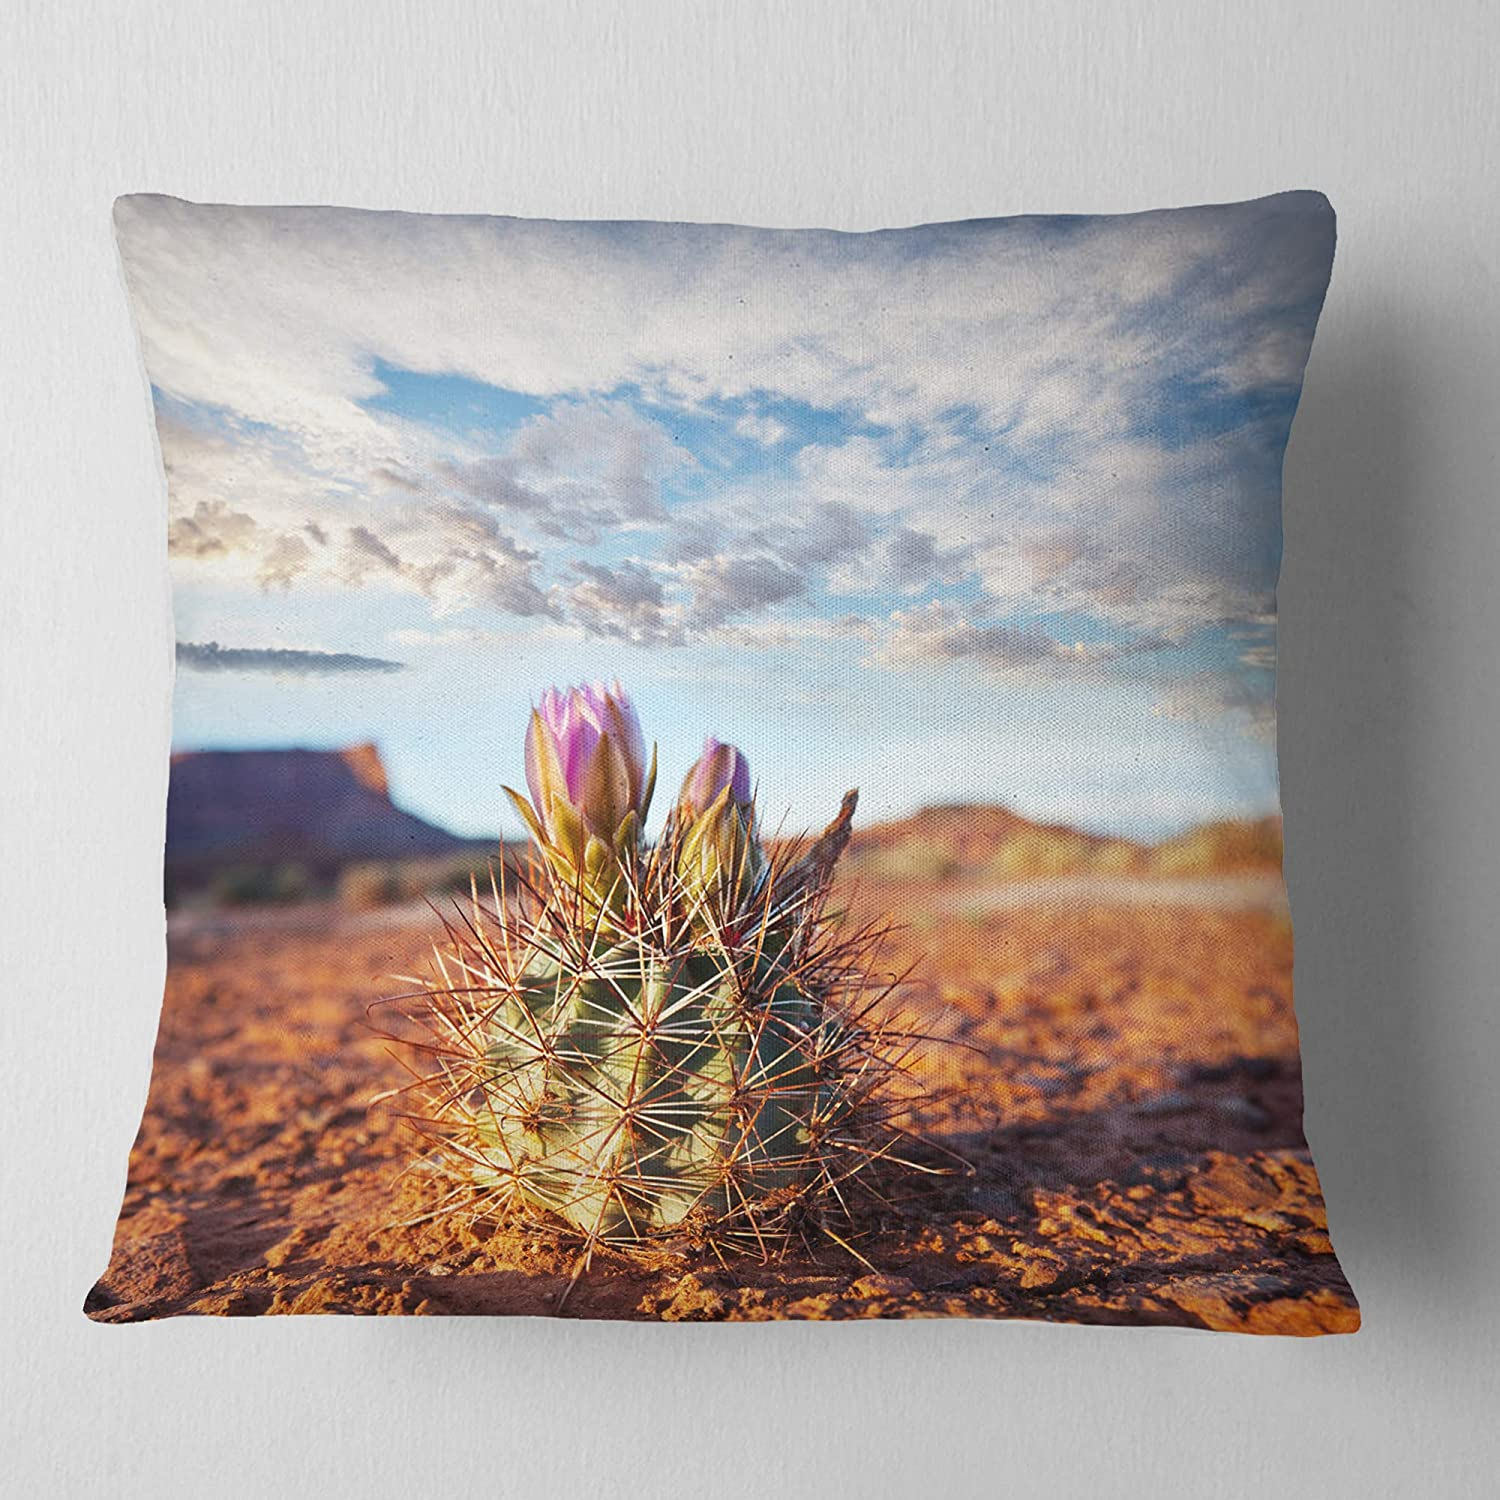 x 26 in Designart CU12410-26-26 Large Cactus Under Cloudy Sky Floral Cushion Cover for Living Room Sofa Throw Pillow 26 in Insert Printed On Both Side in